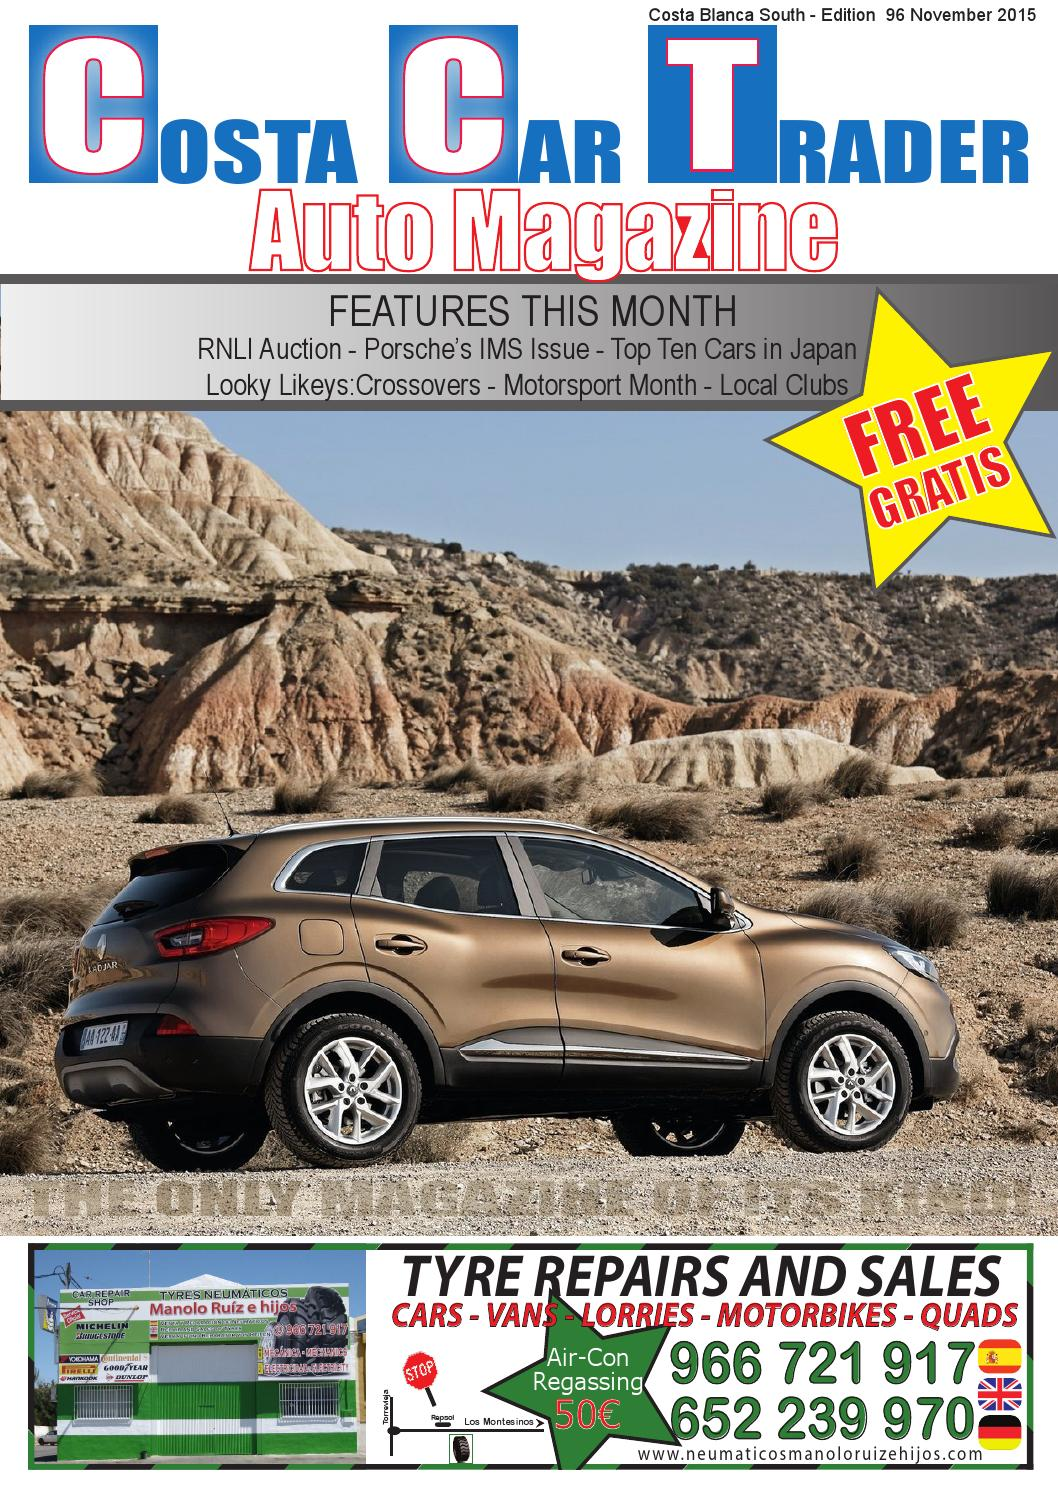 Cct Noviembre 2015 by Costa Car Trader - issuu